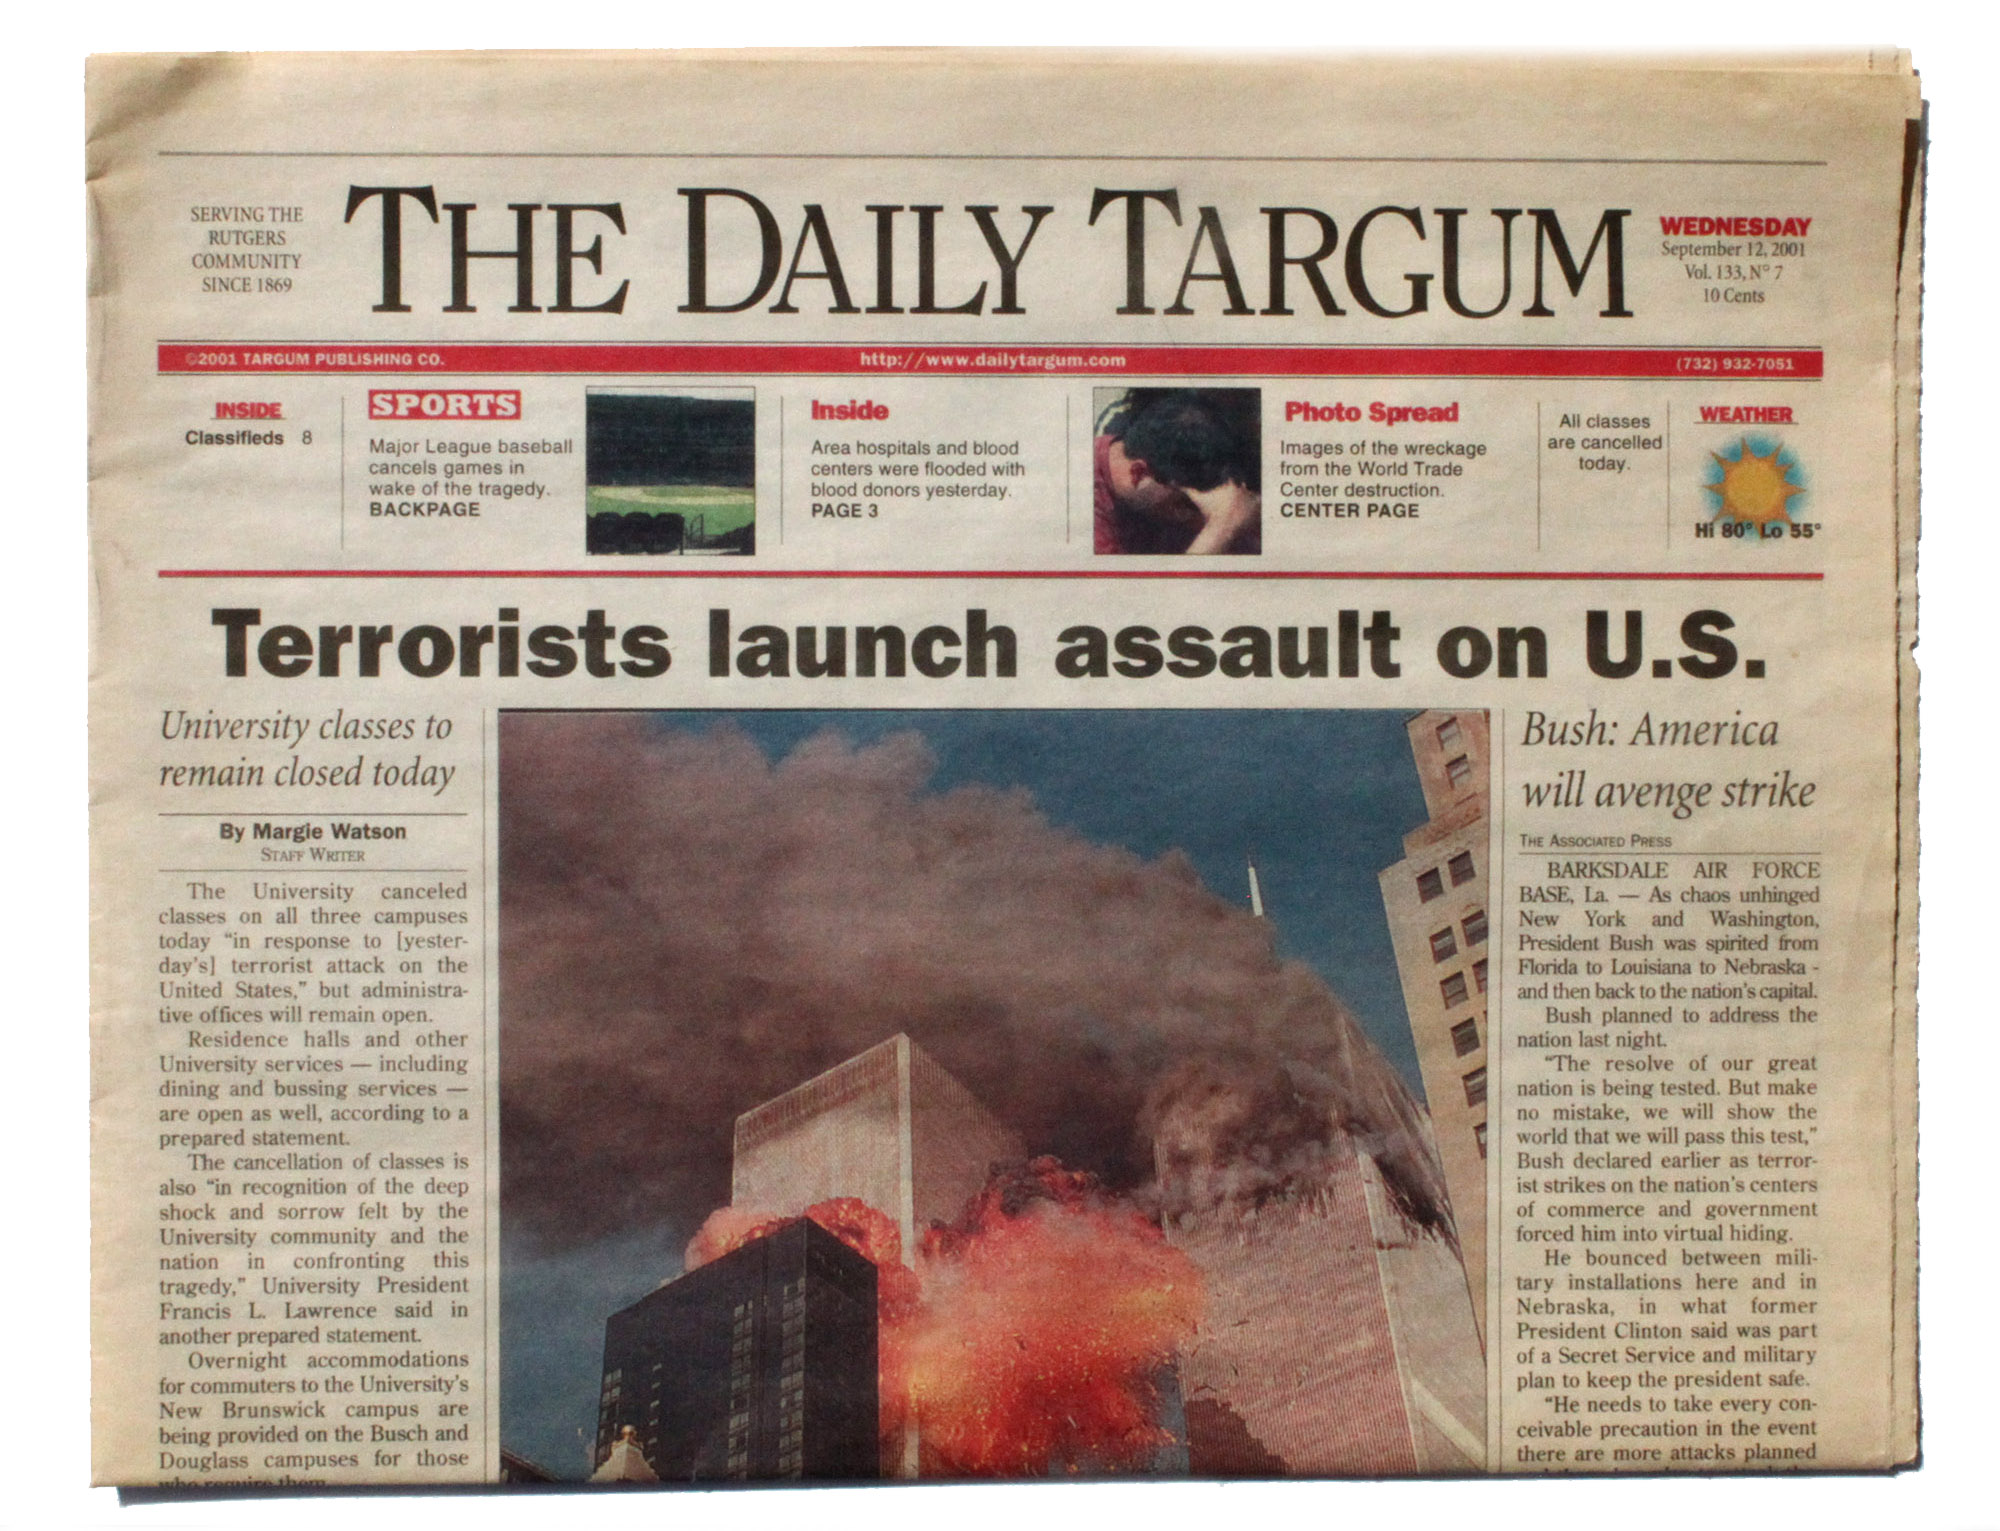 The Daily Targum, September 12, 2001 Edition